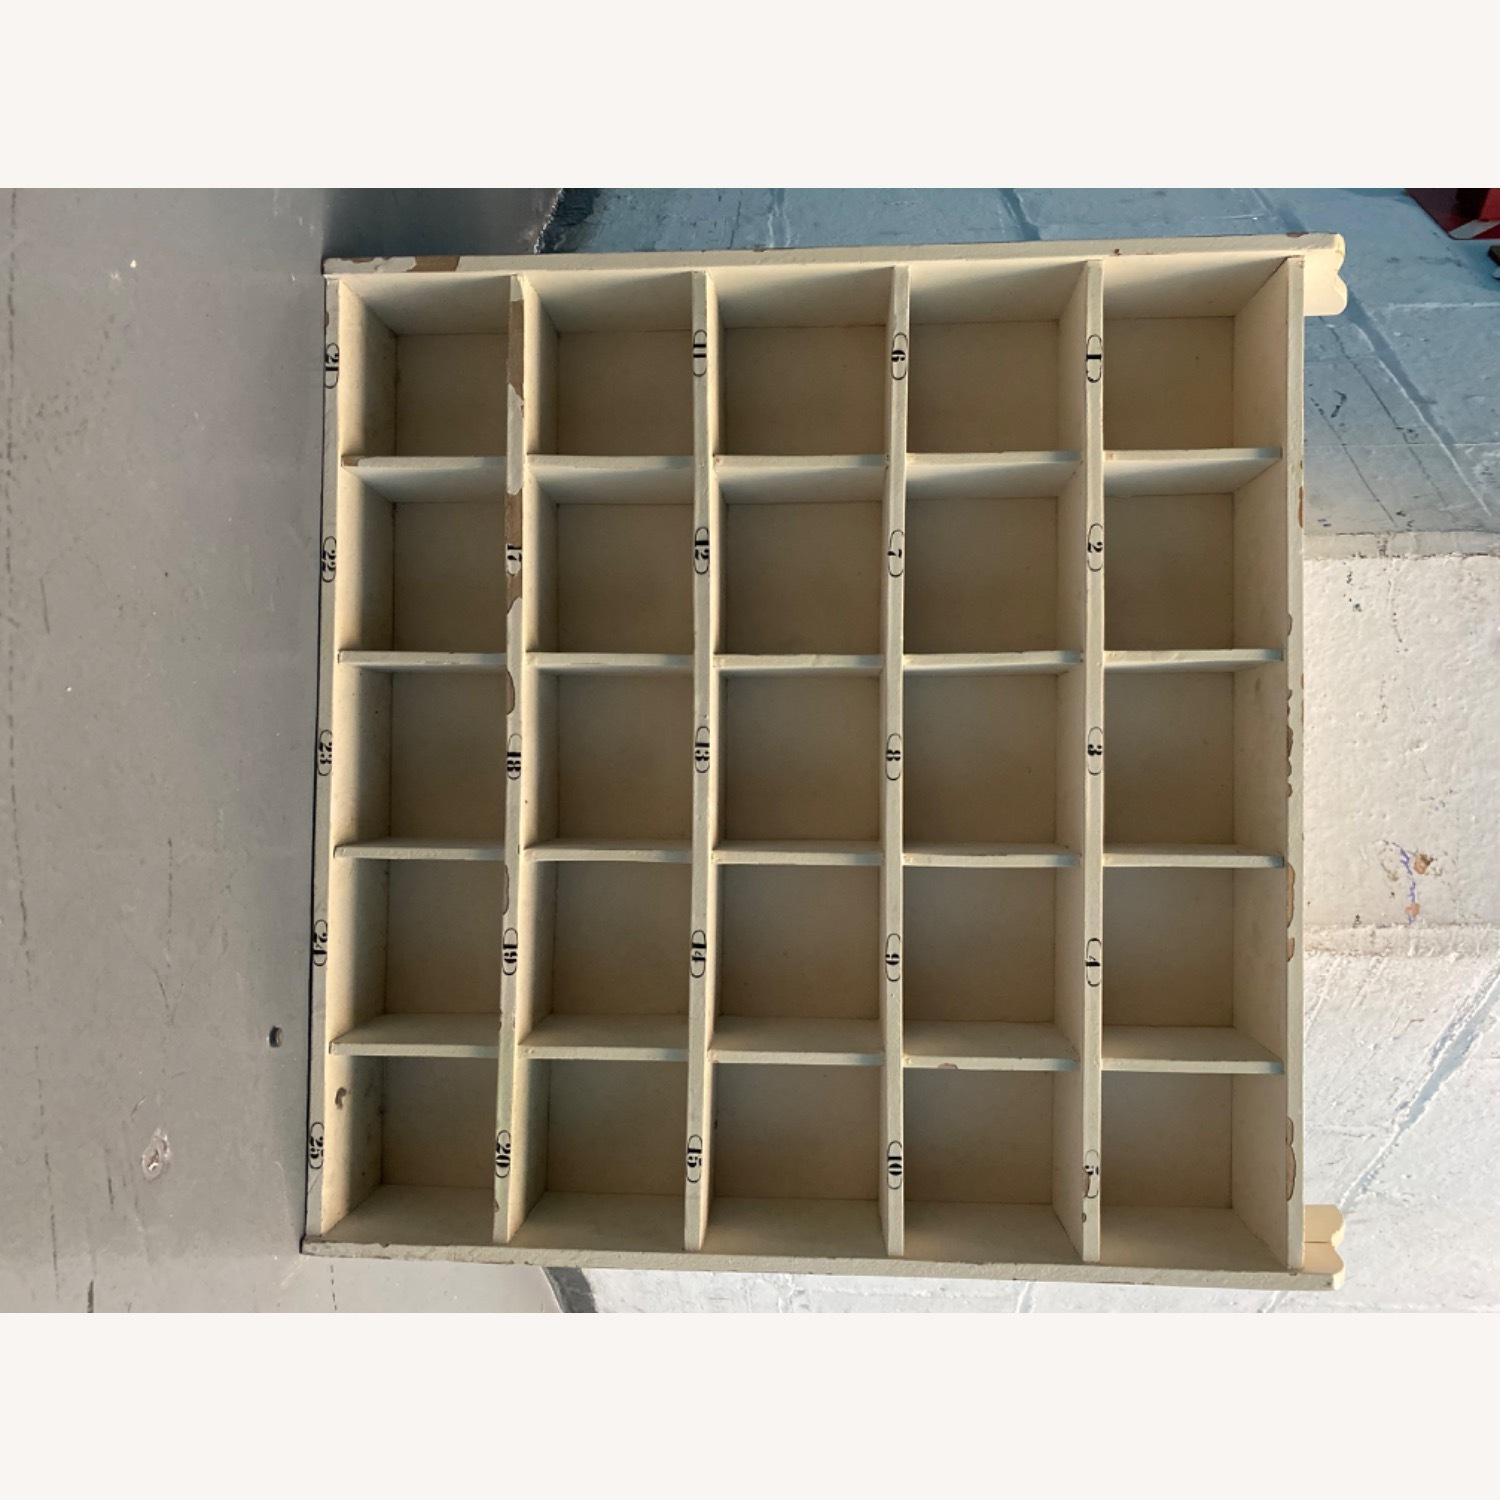 Pottery Barn Cubby Storage - image-22